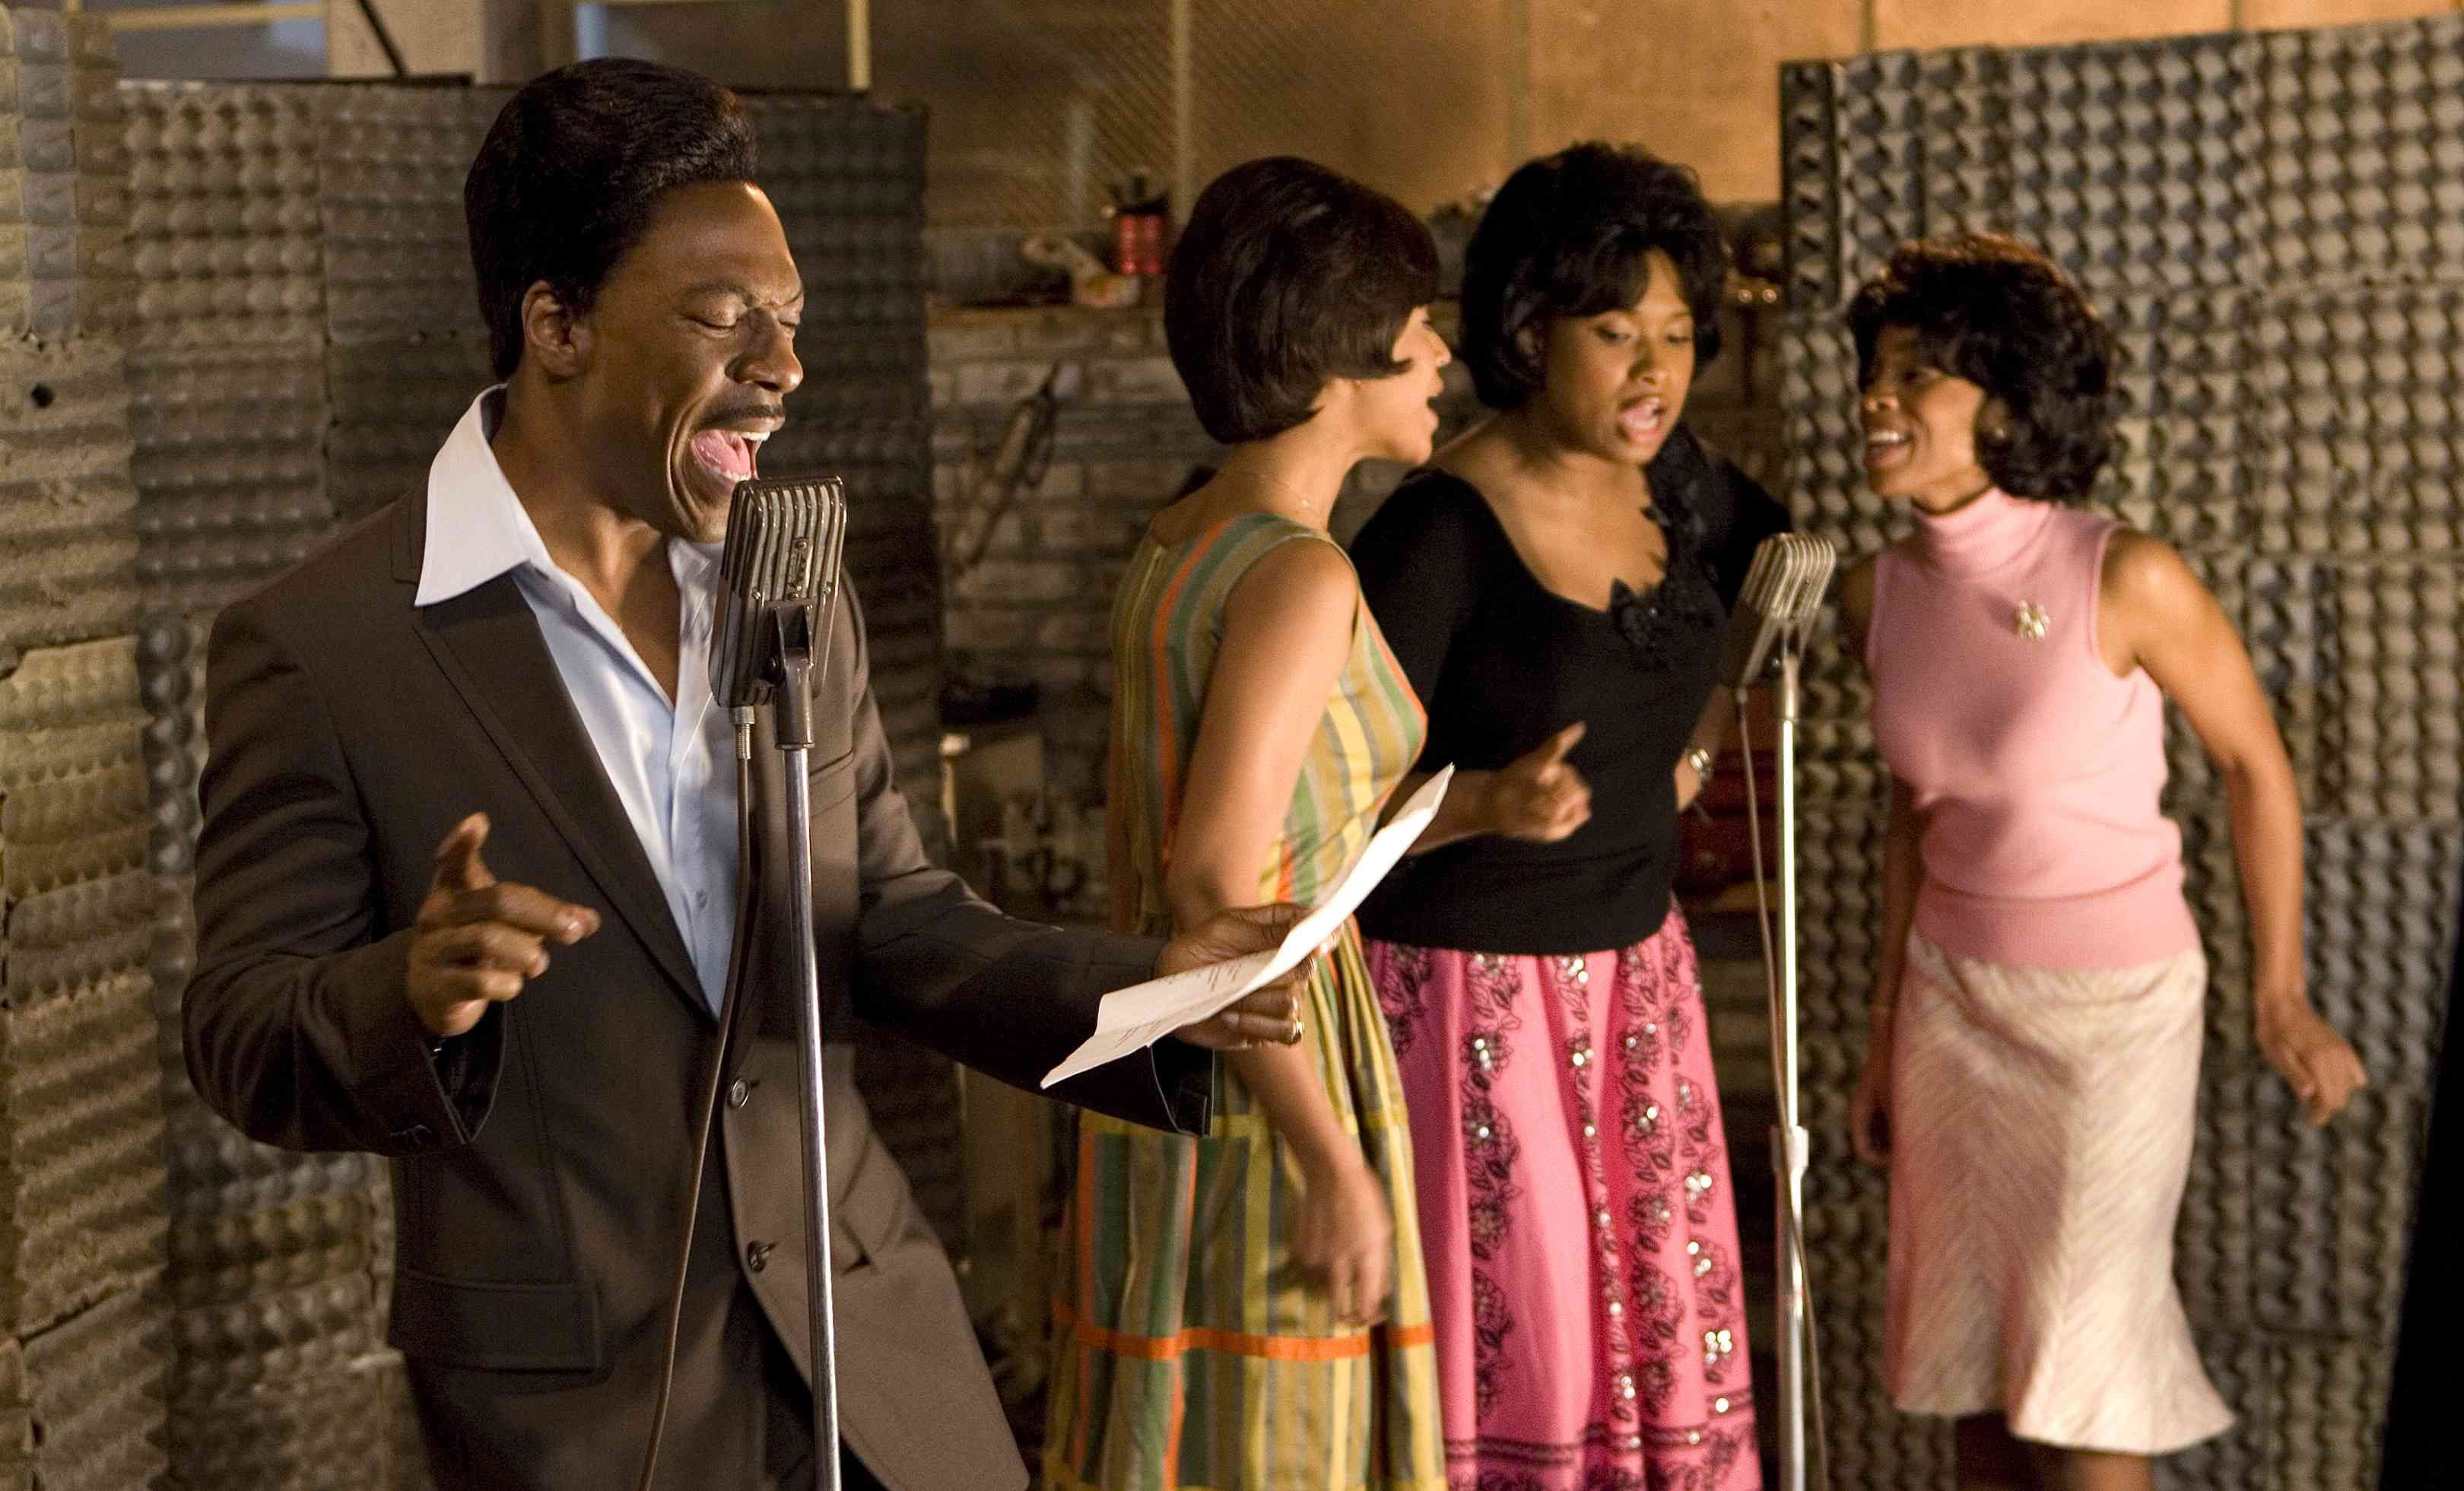 Image result for dreamgirls movie images""